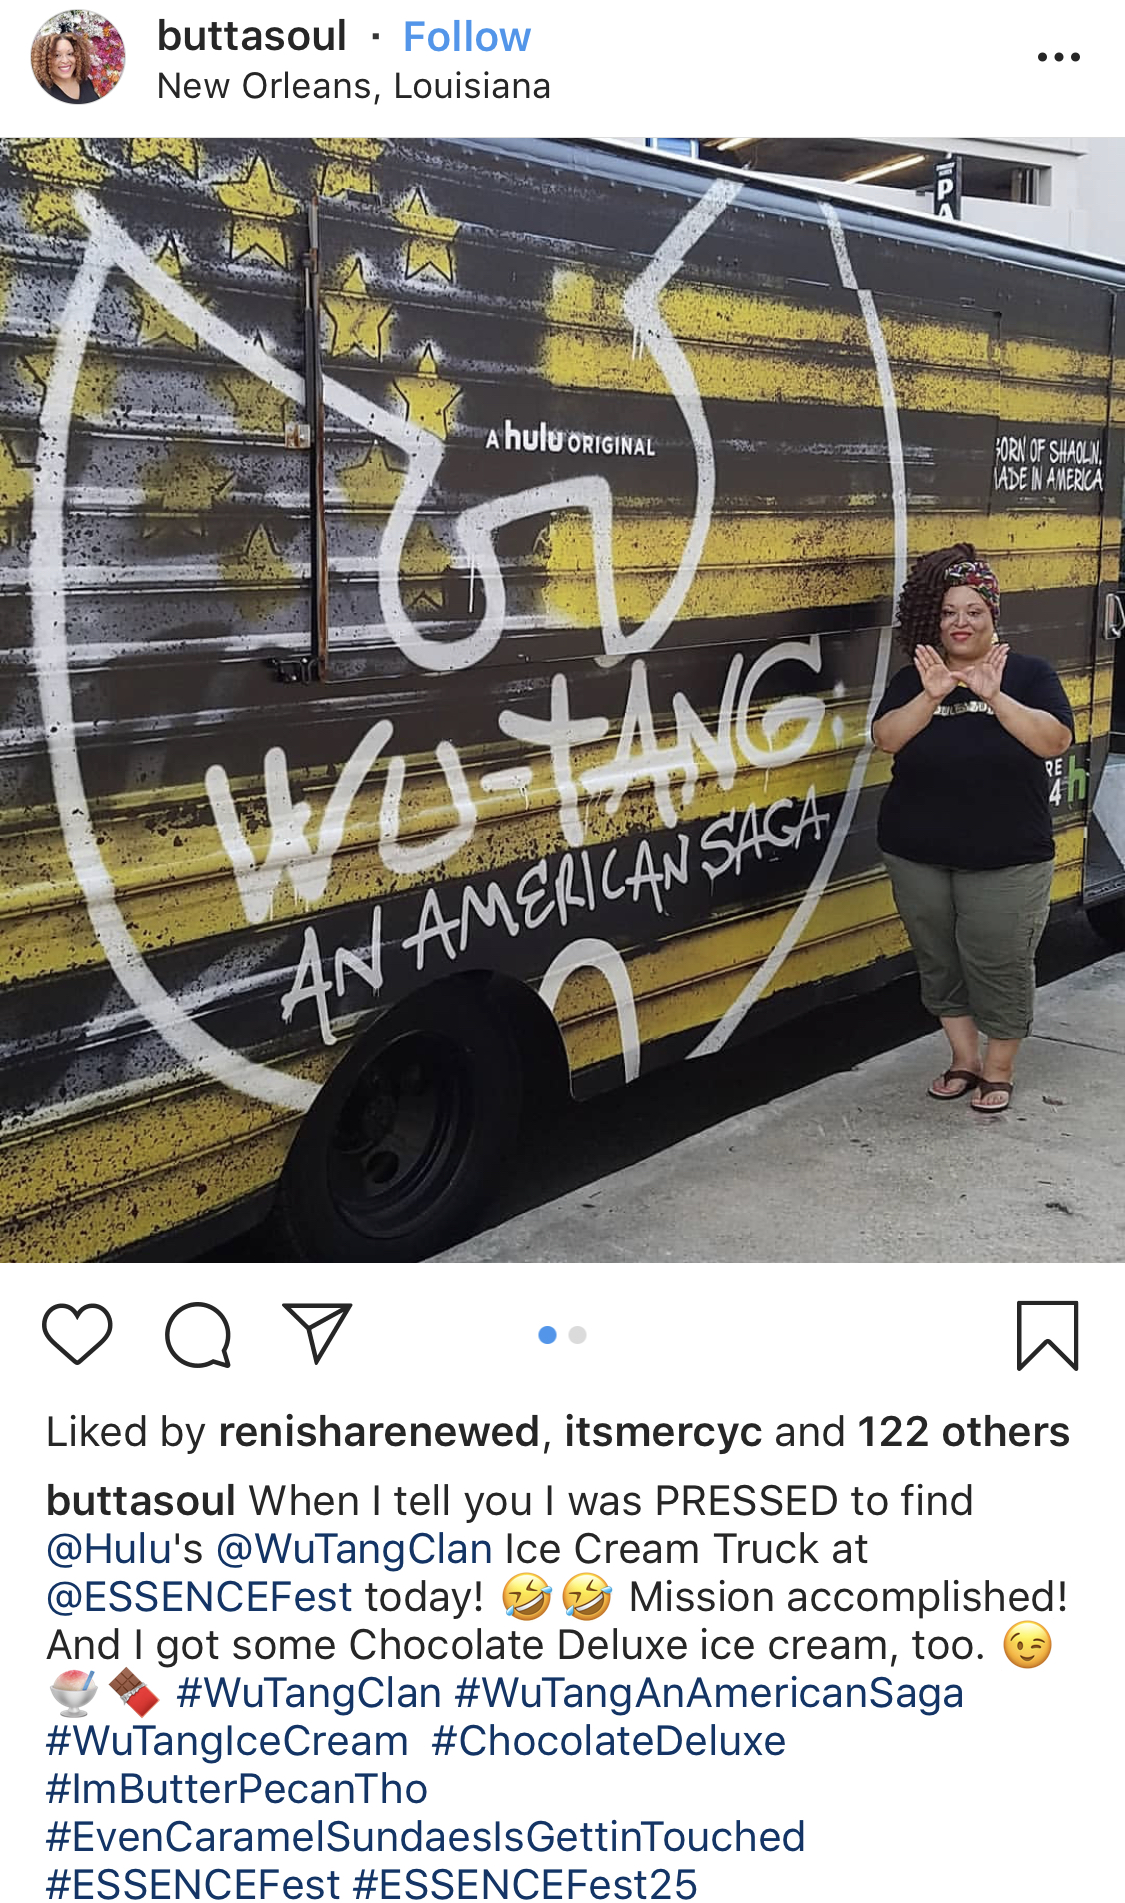 "This was an incredible brand experience activation! The ""Ice Cream"" truck picks up on Wu Tang's lyrics and is decorated in a way that advertises the new Wu Tang Show on Hulu. The truck itself, is also a photo opp! Great job hitting multiple touchpoints Hulu with this one!"